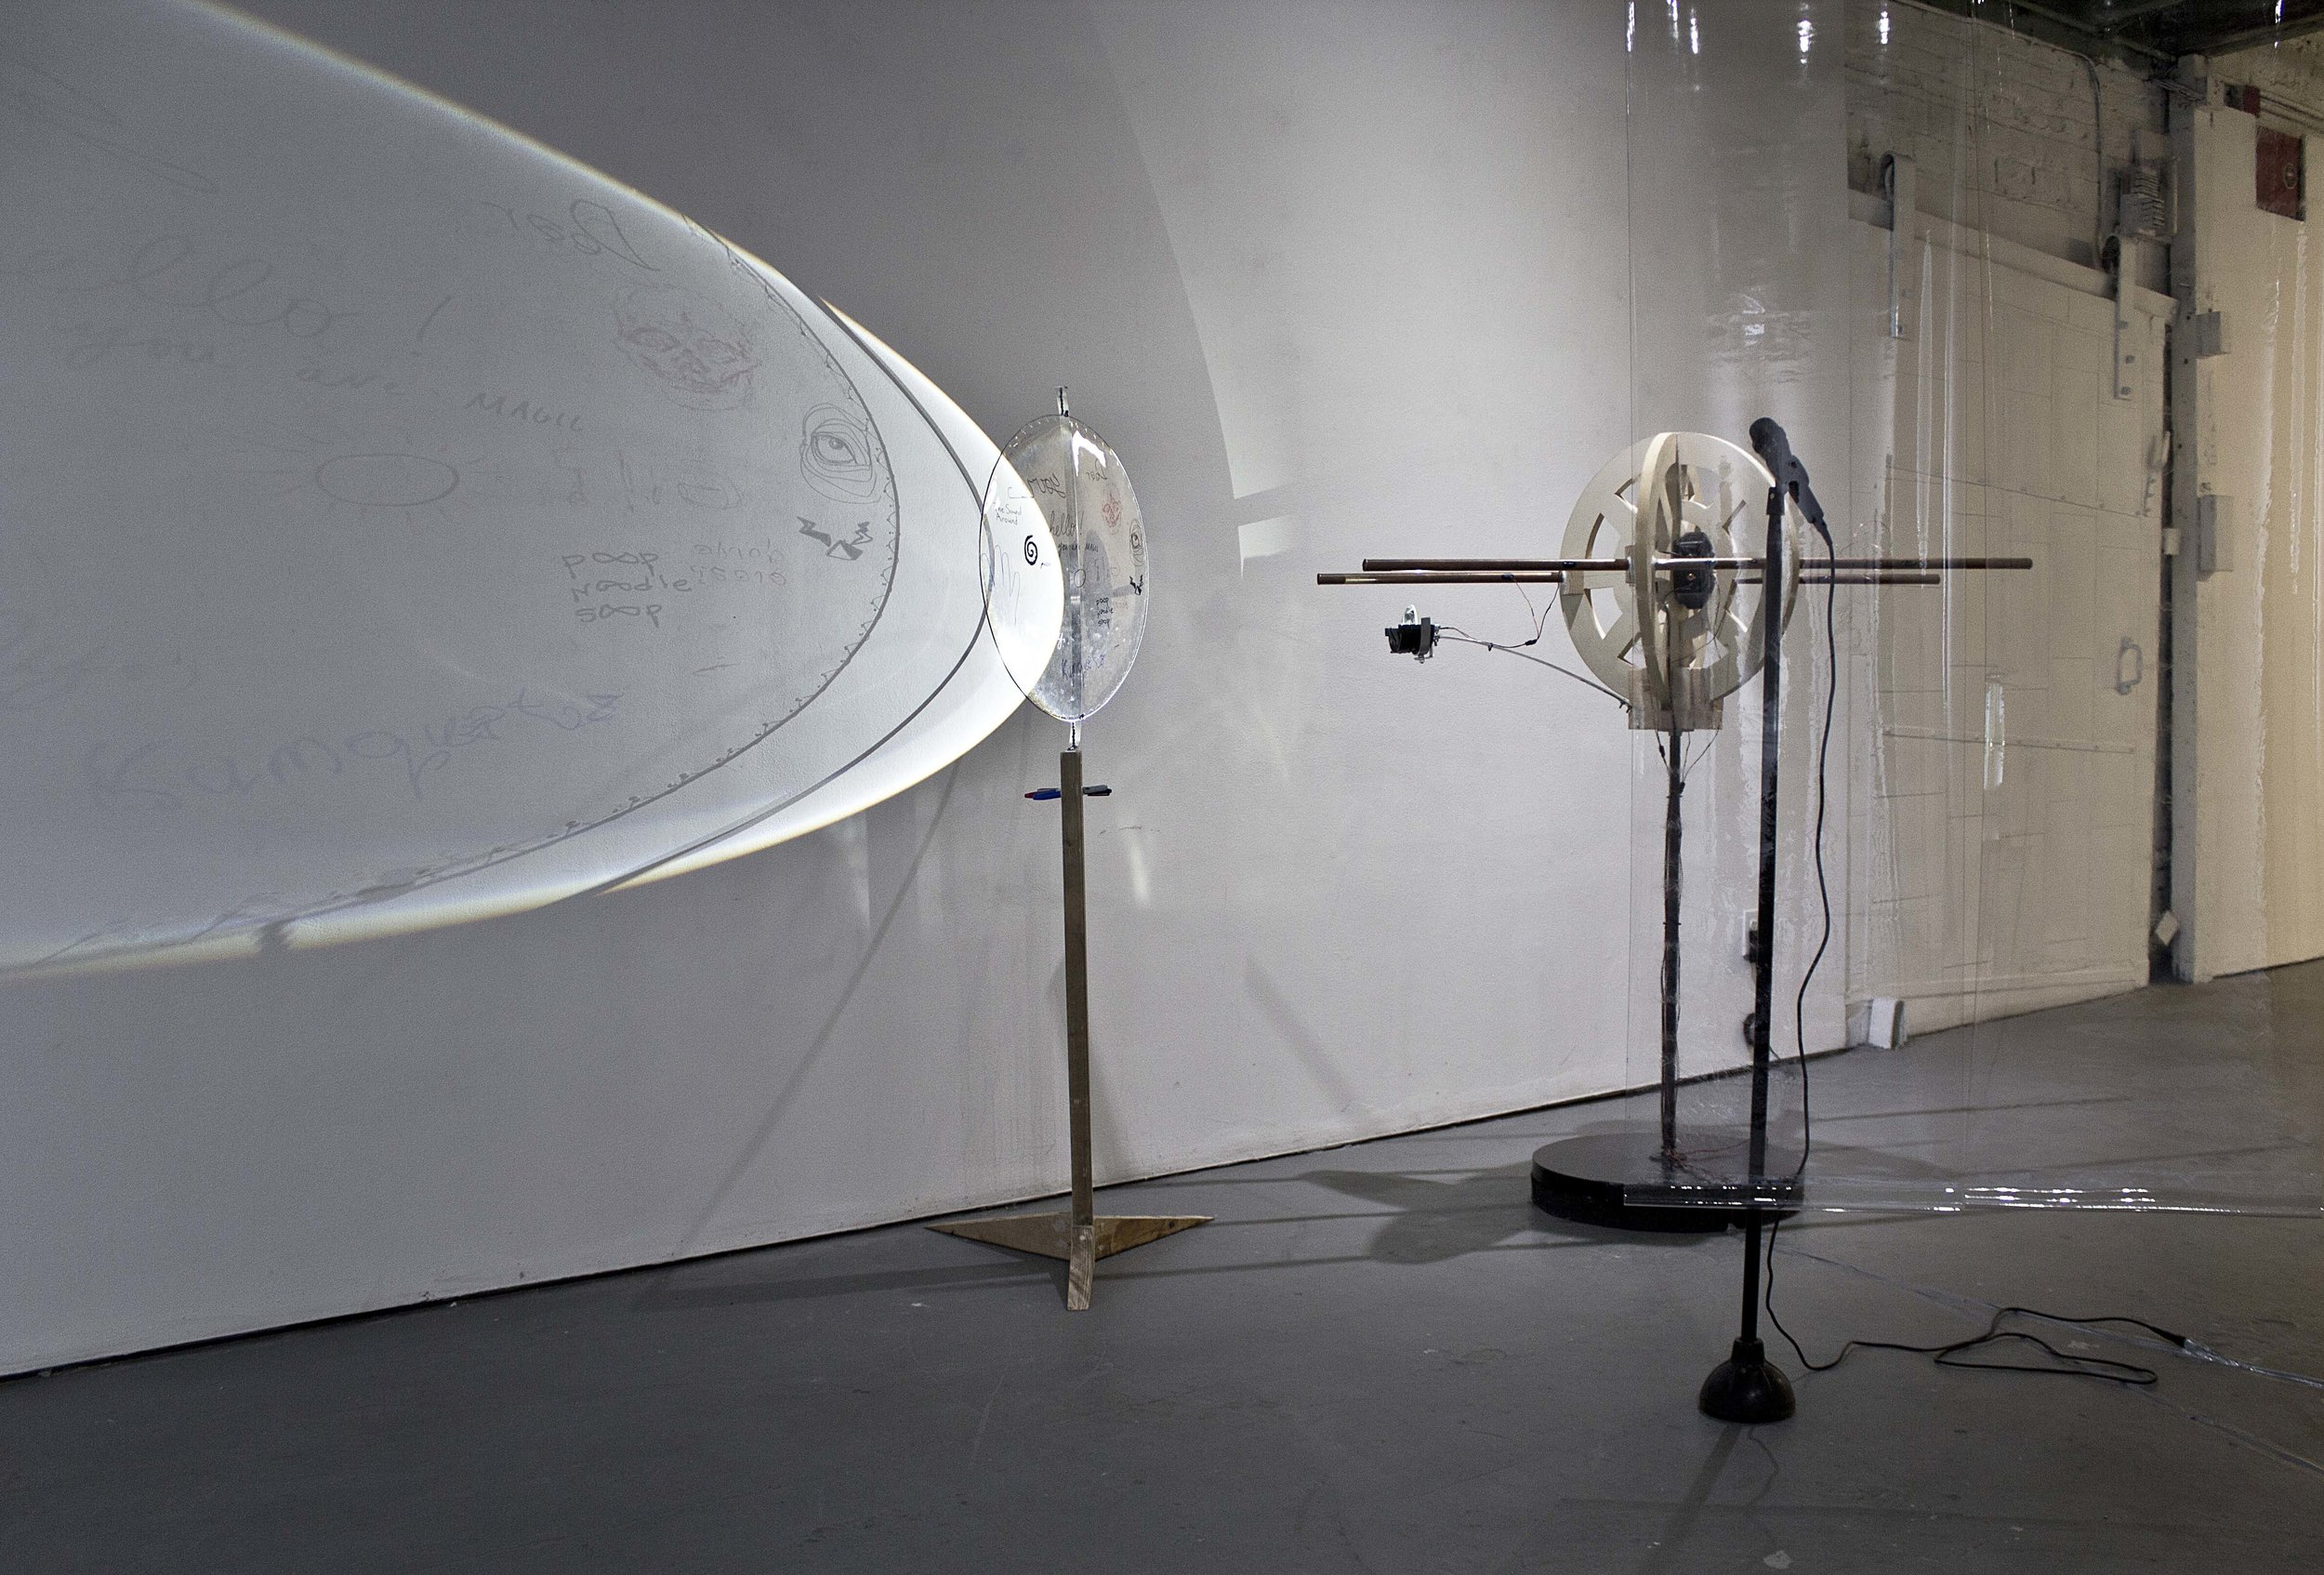 """Rotating Sketch Board & Sincerely Commo"" , 2017-2018  Copper pipe, LED, television lens, plunger, wood 2' x 5' x 2'/ 4' x 5' x 2'  Courtesy Kyungjin Kim & Carrie Able Gallery"